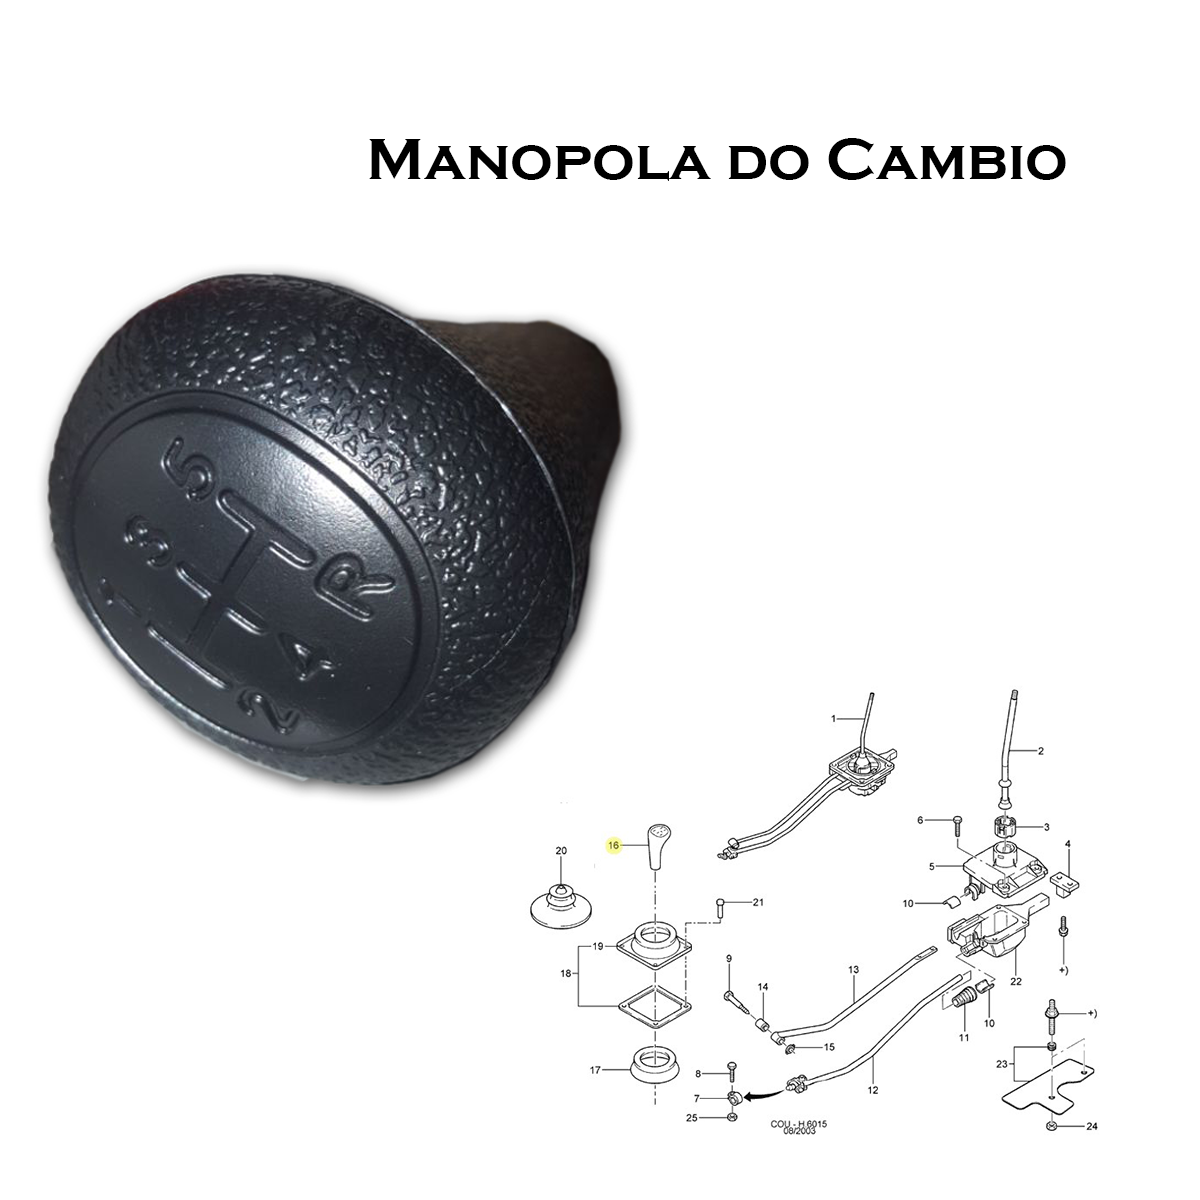 Manopola do Cambio - (courier 1998 a 2013) (escort 1997 a 20